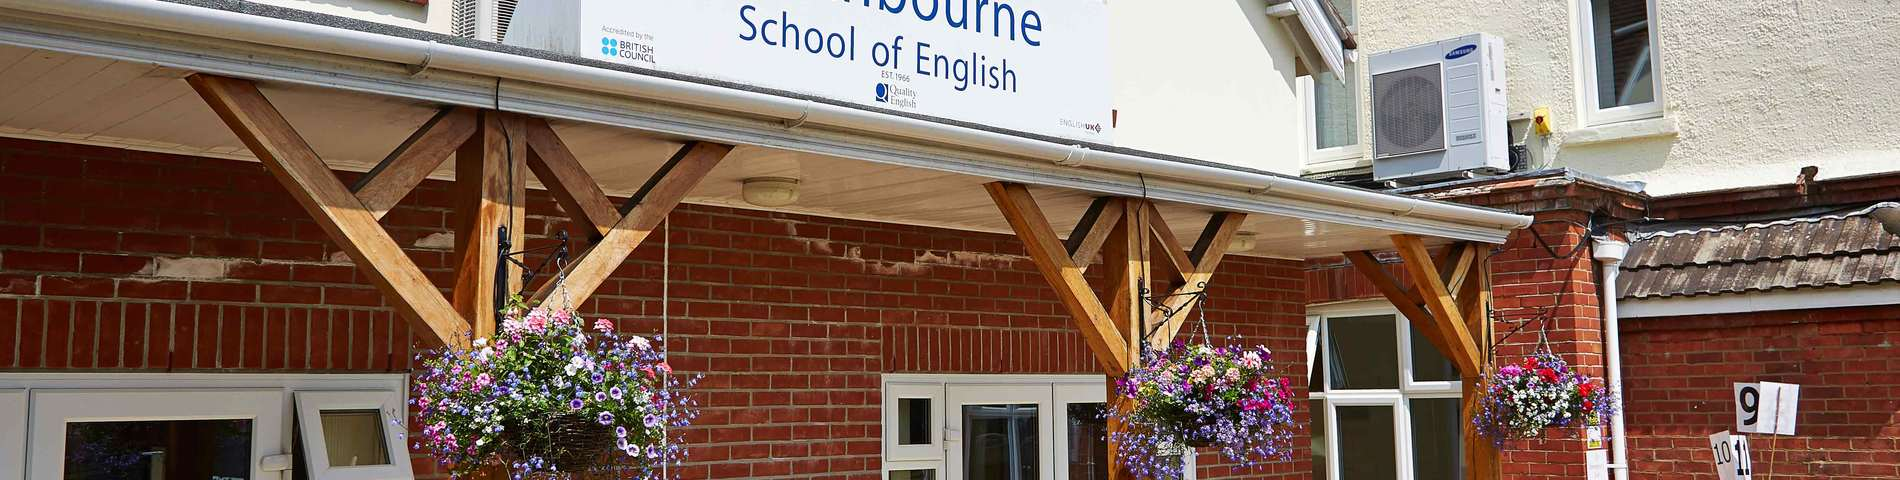 Southbourne School of English foto 1